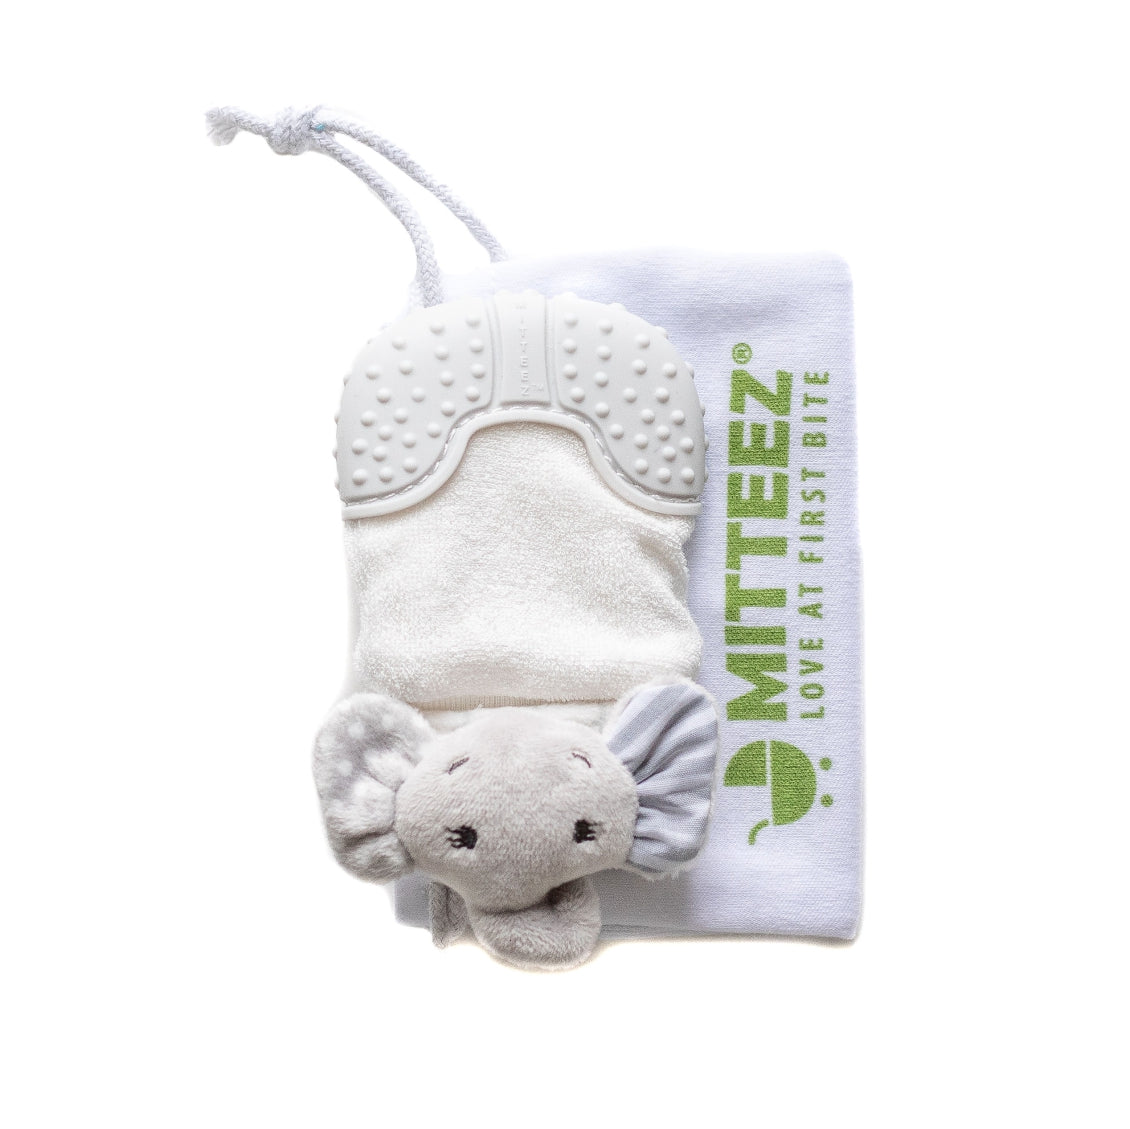 MITTEEZ® The Ultimate Organic Teething Mitty and Keepsake - Ella the Elephant  (3-8 MONTHS) Gray SOLD OUT